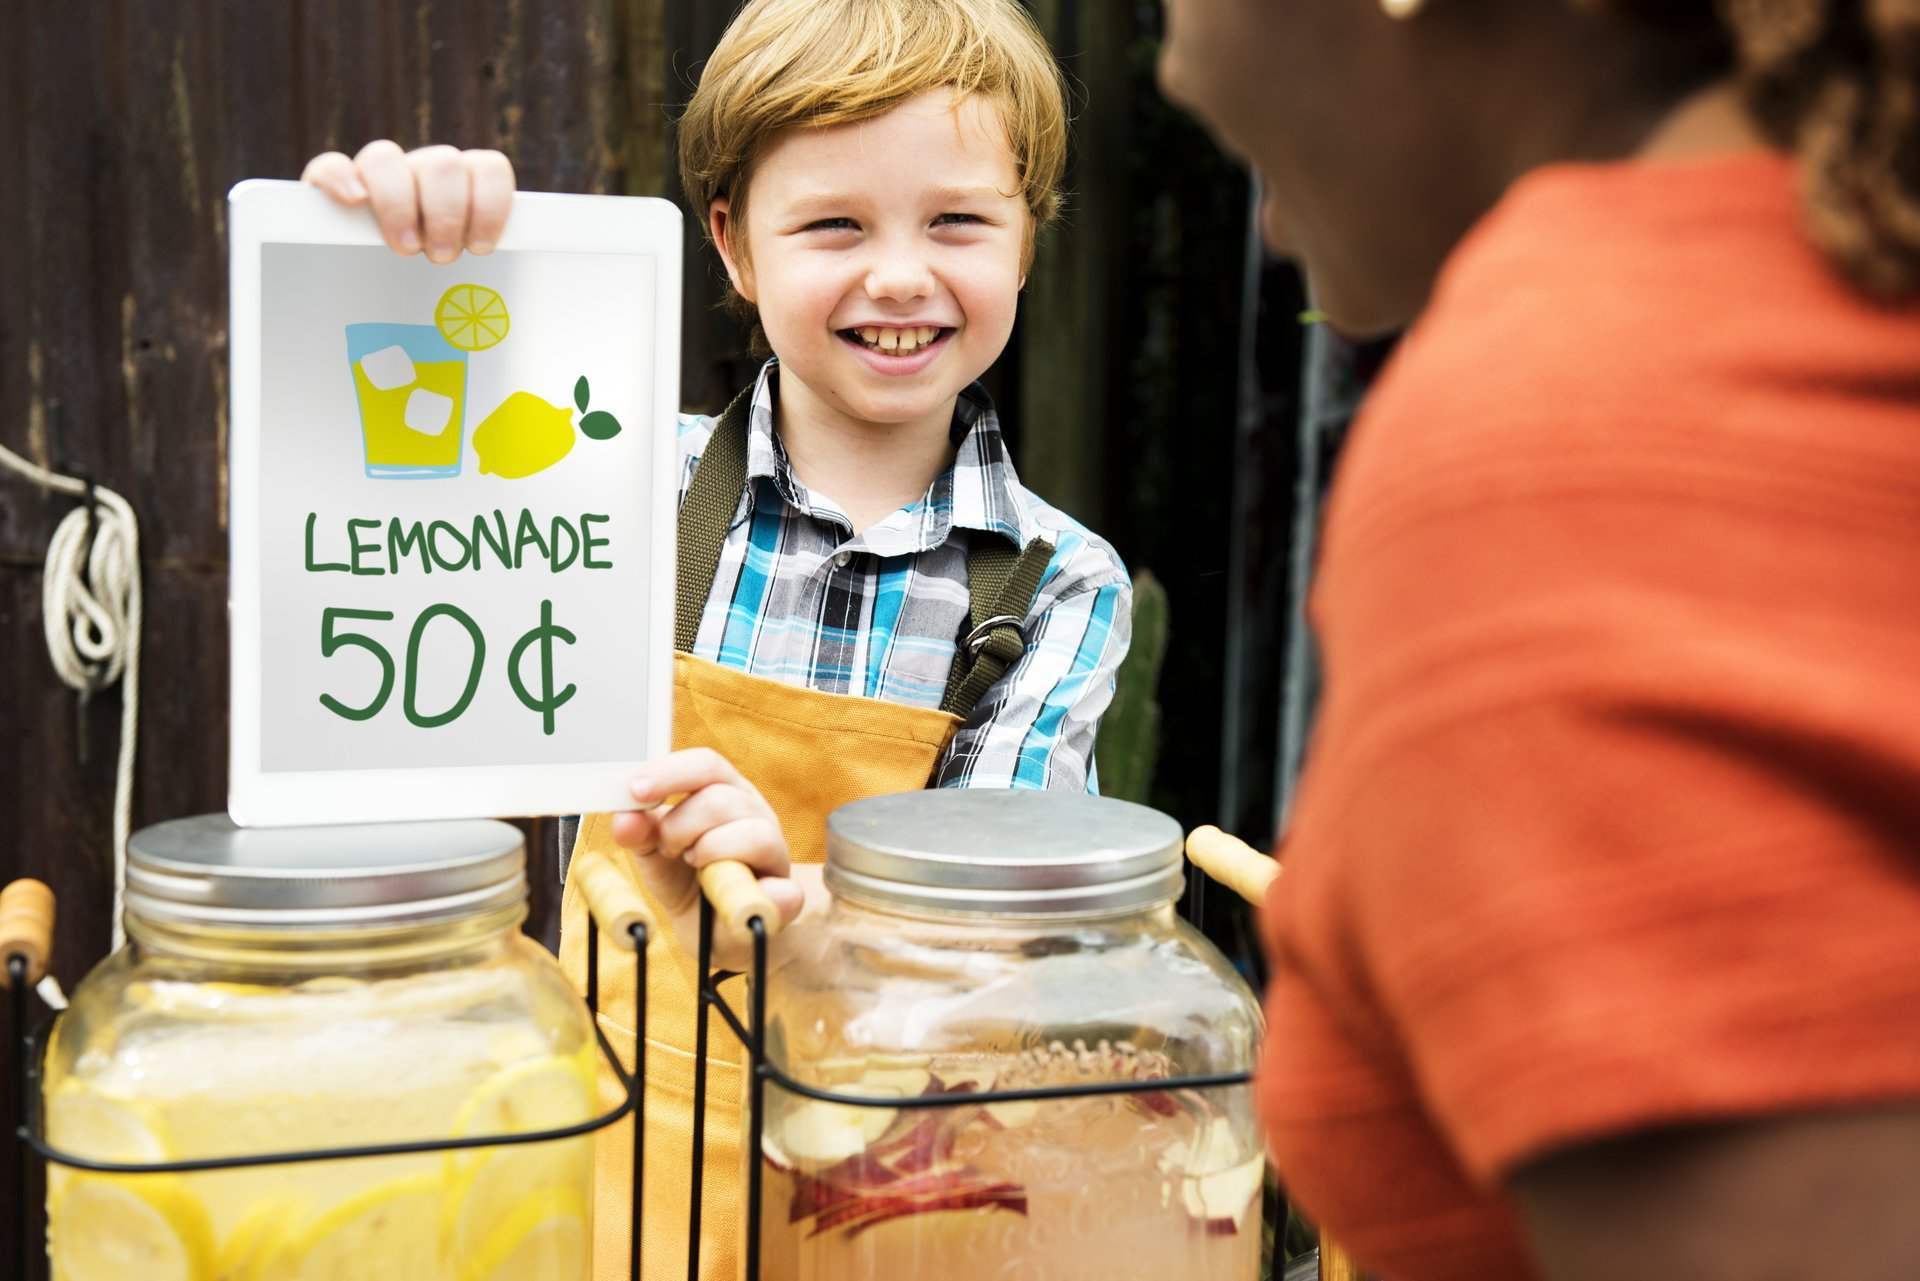 A boy sells lemonade